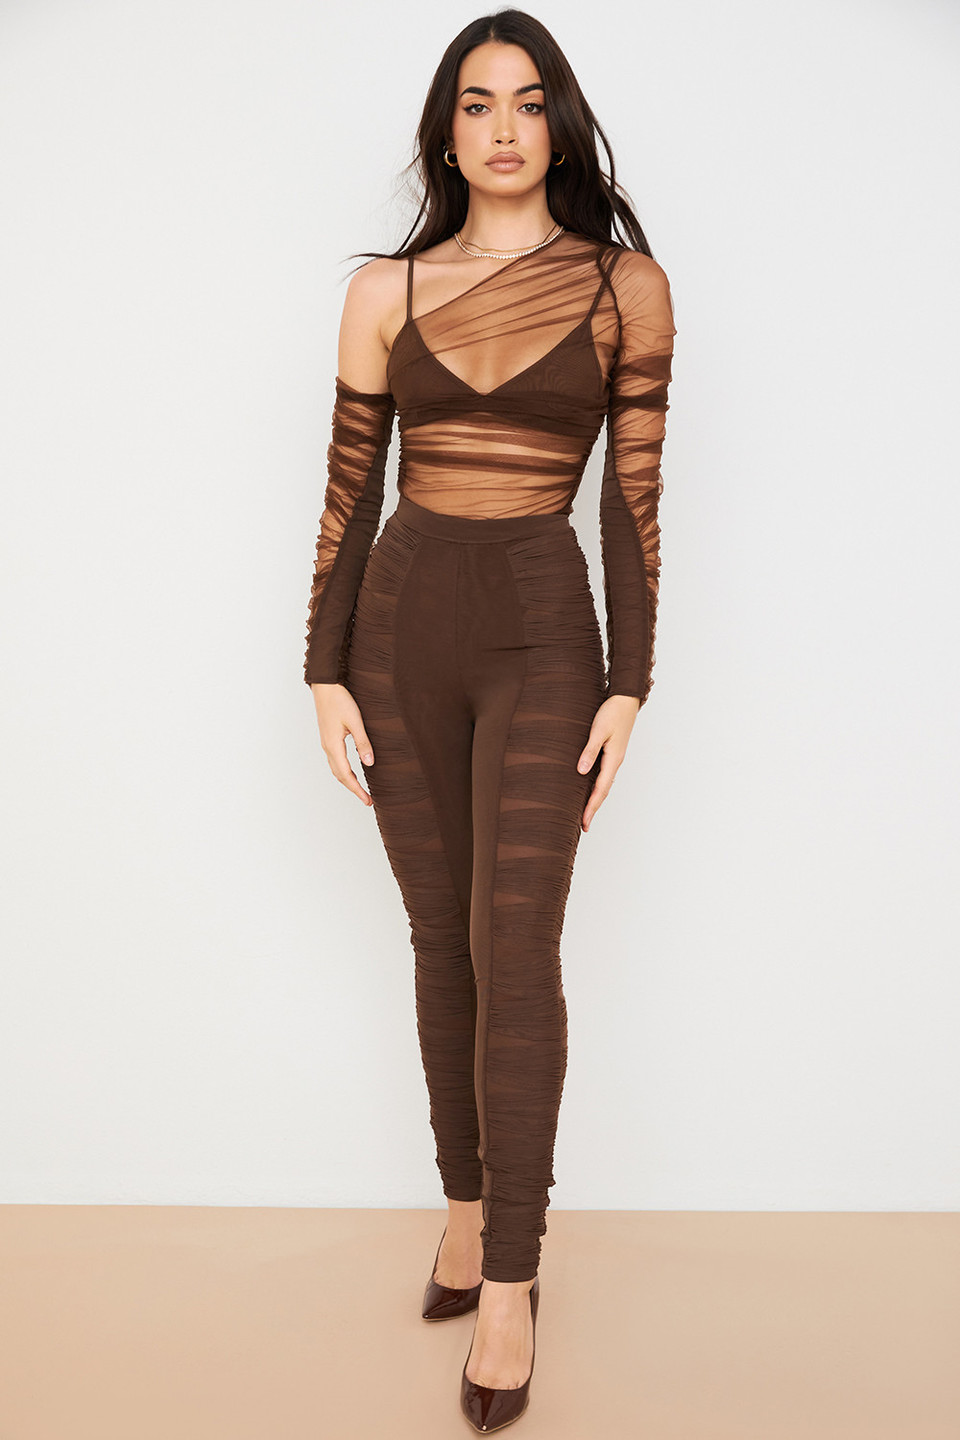 Isolde Chocolate Layered Mesh Trousers